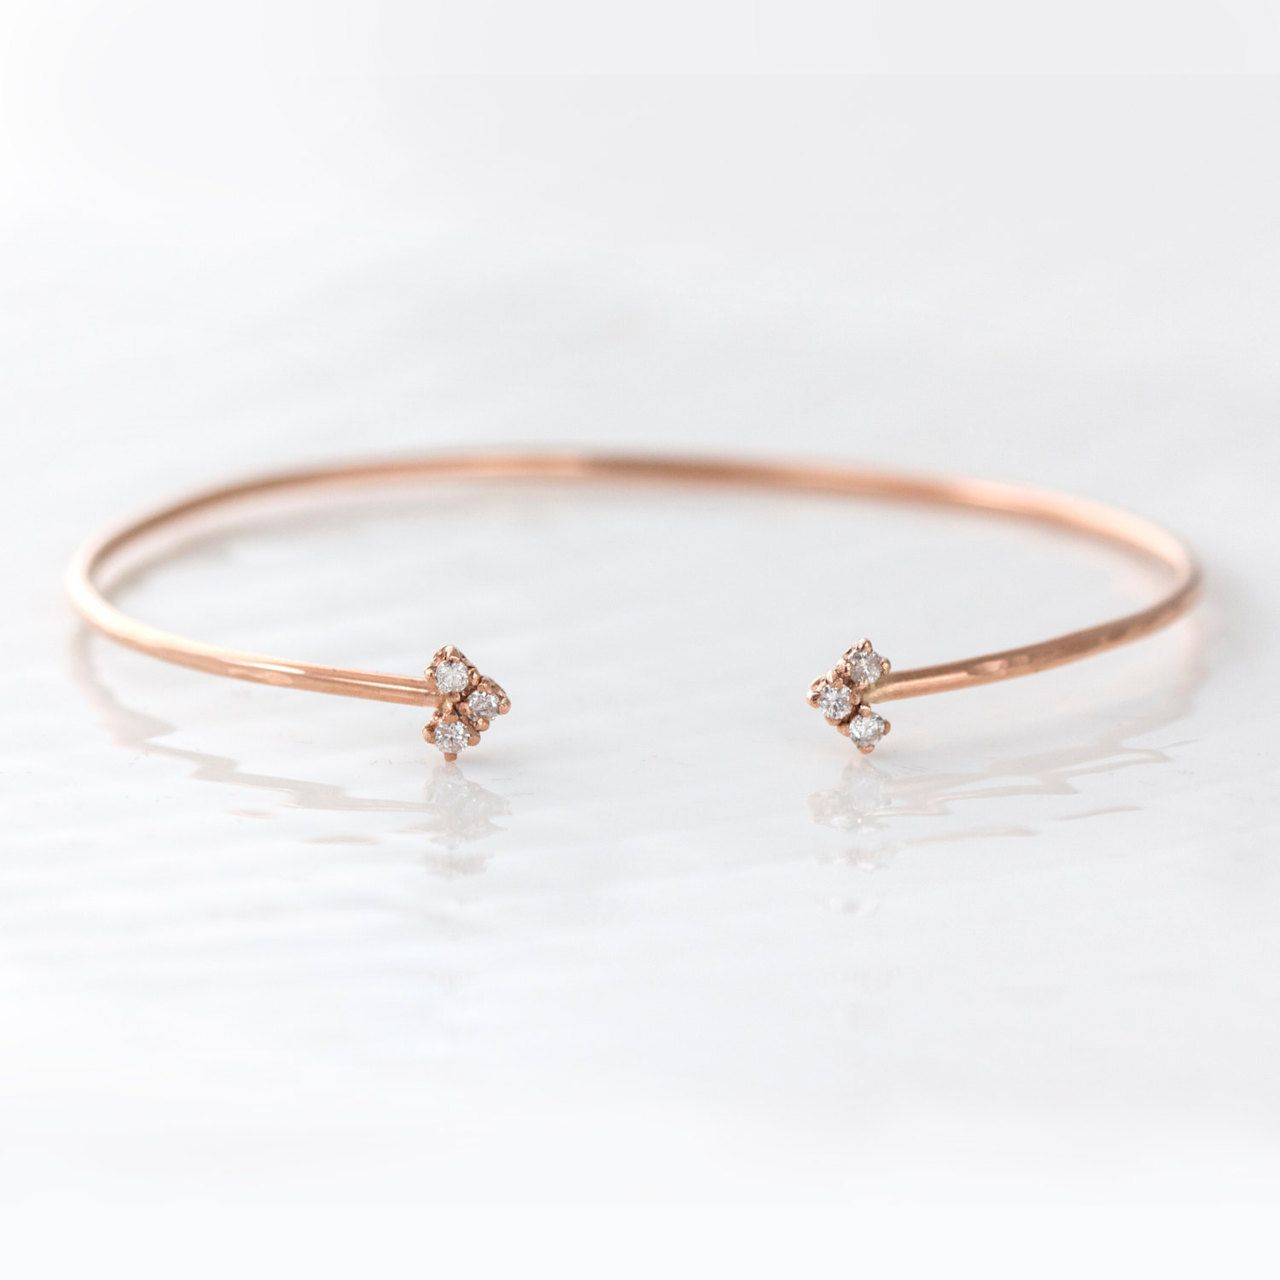 Simple feminine and delicate this cuff bracelet is handmade in k